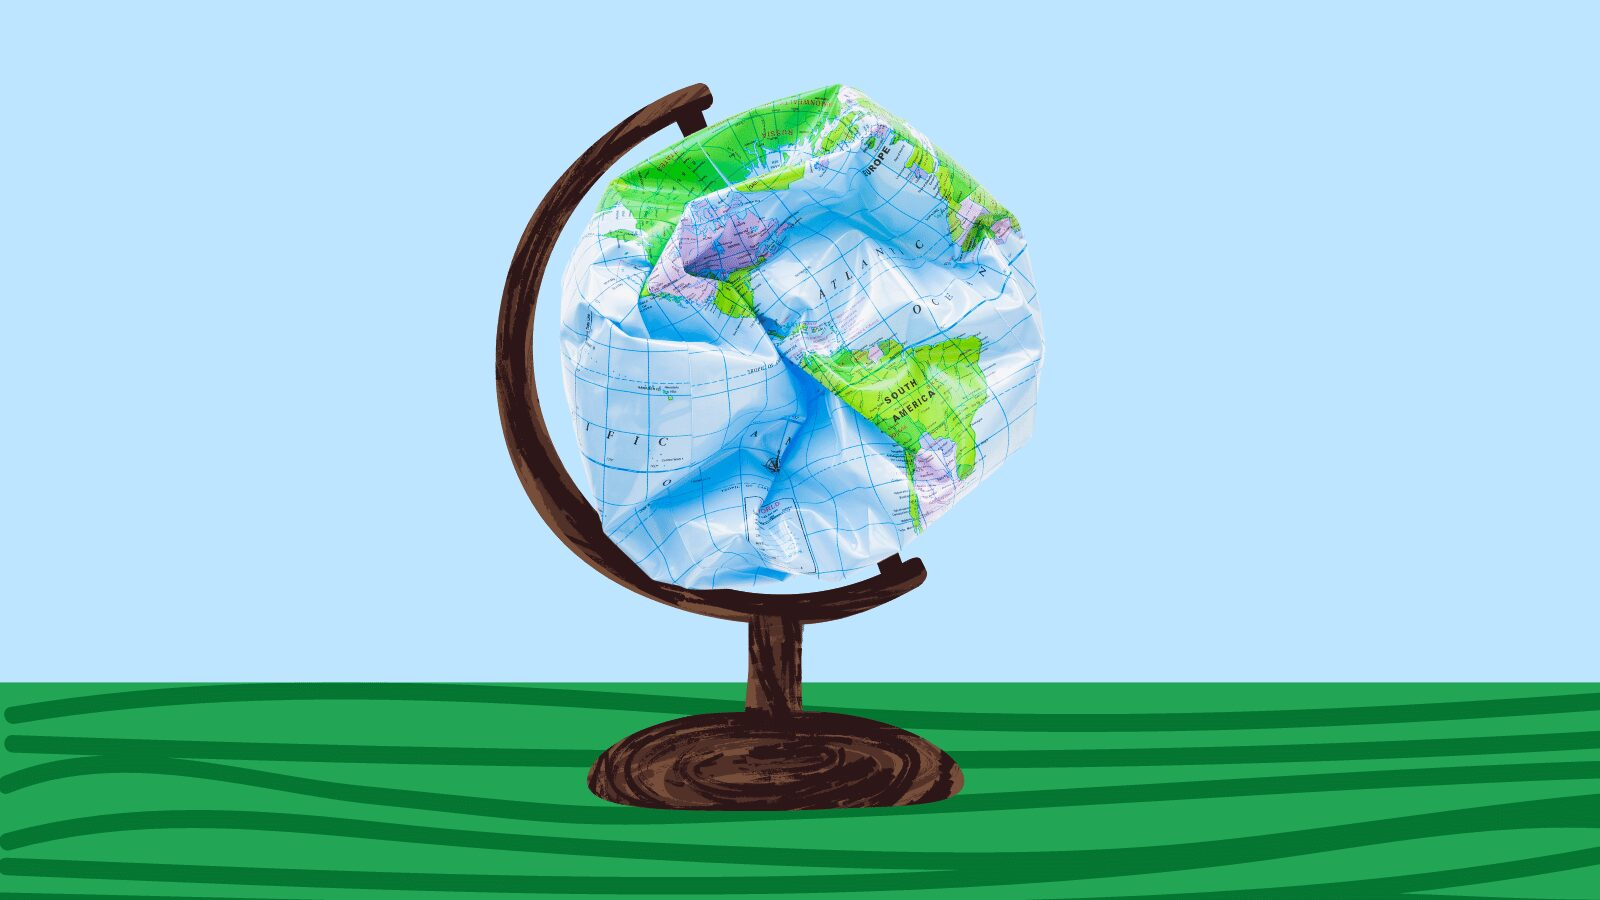 Read more about the article Earth Overshoot Day 2021 Has Shifted Back To July 29 : What's Next?